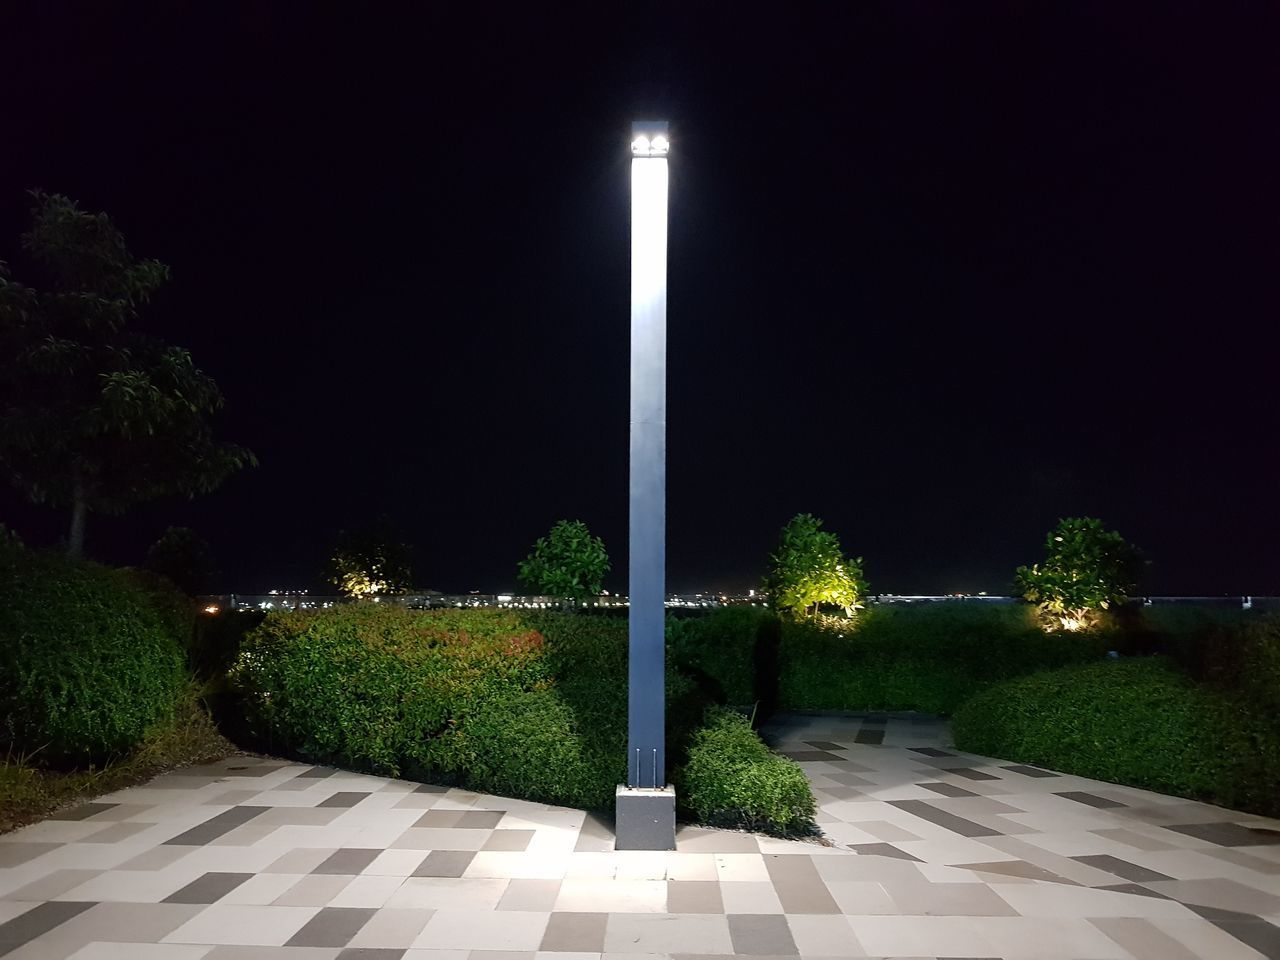 night, plant, illuminated, no people, nature, tree, sky, lighting equipment, the way forward, architecture, outdoors, street, street light, footpath, direction, clear sky, growth, park - man made space, travel destinations, copy space, architectural column, hedge